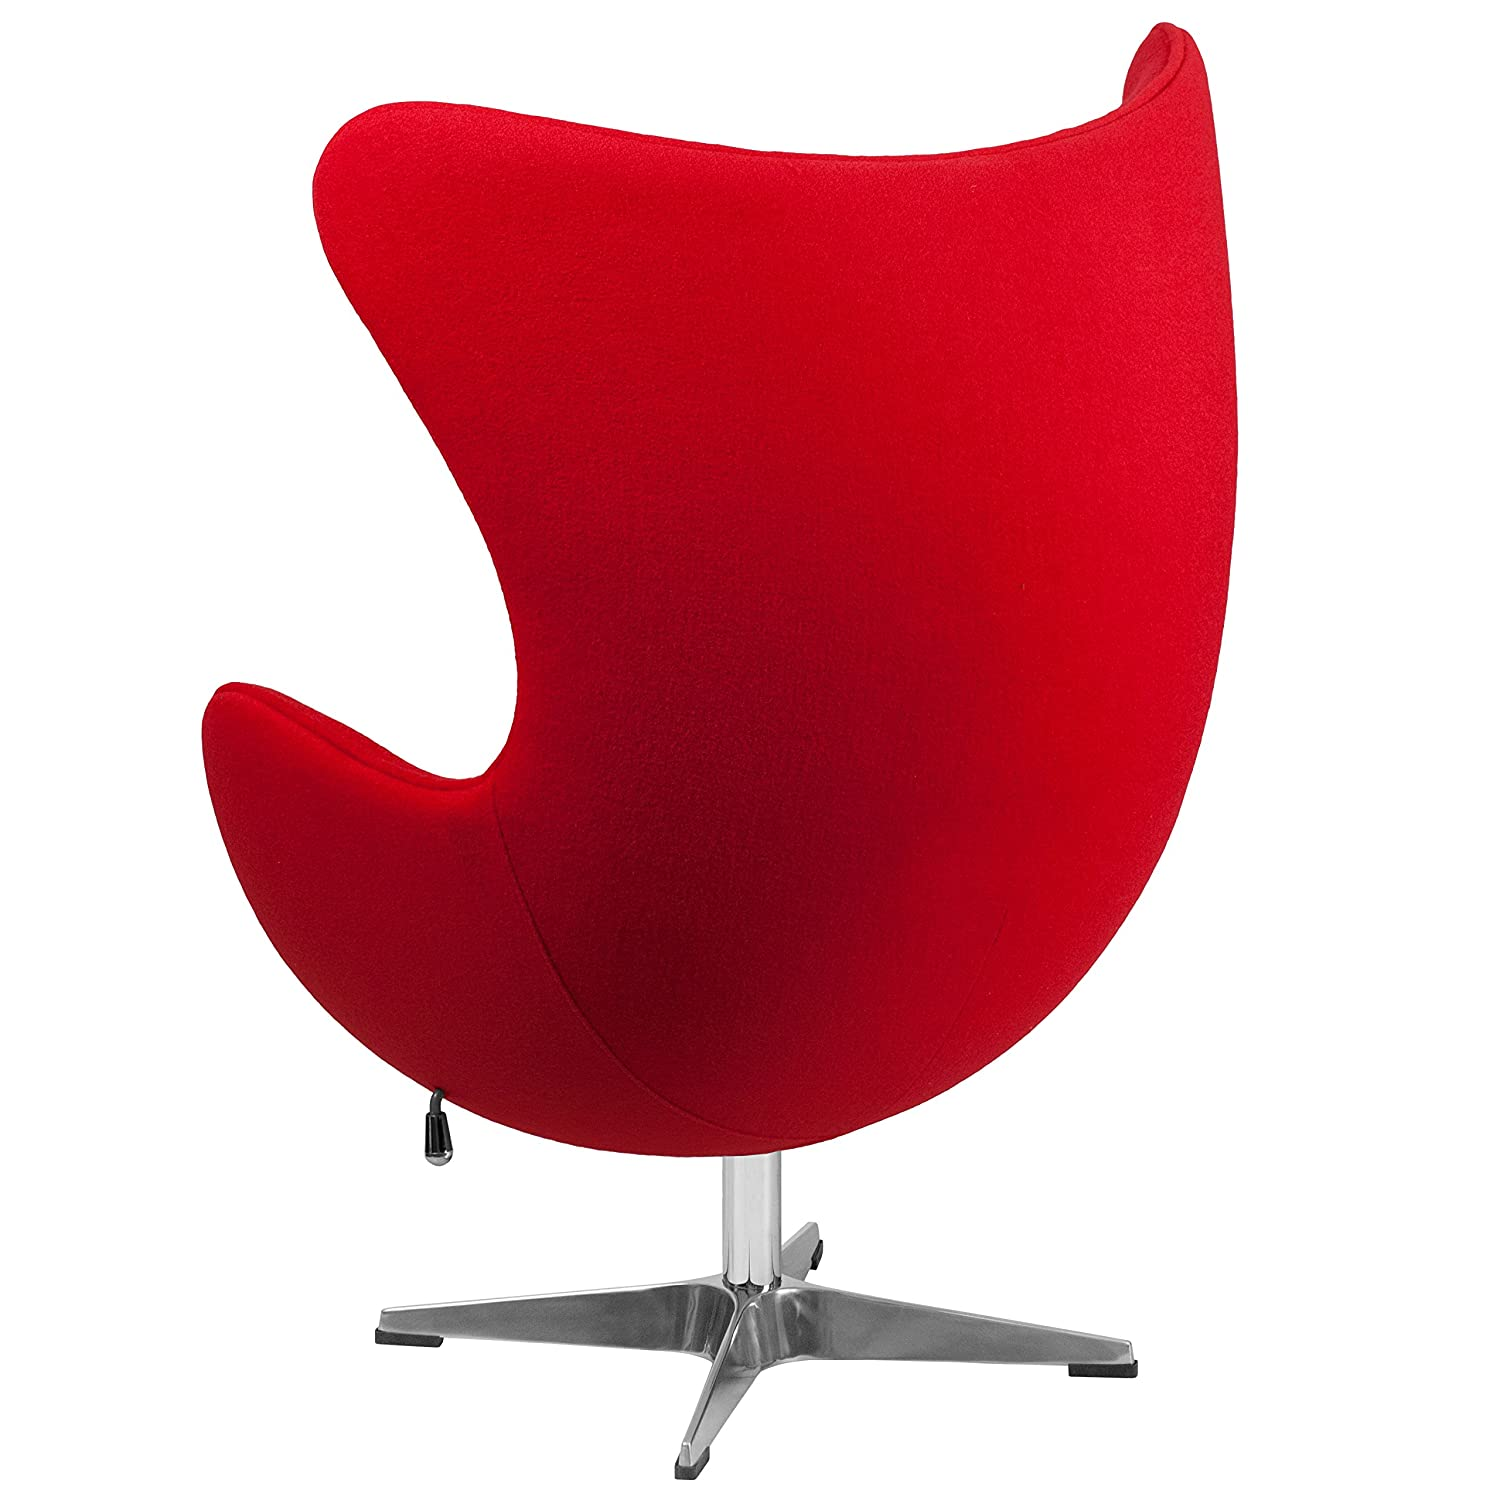 style that will all chair reviews ikea and for you hanging concept the best shocking sphere pic pict sxs of egg make day stay